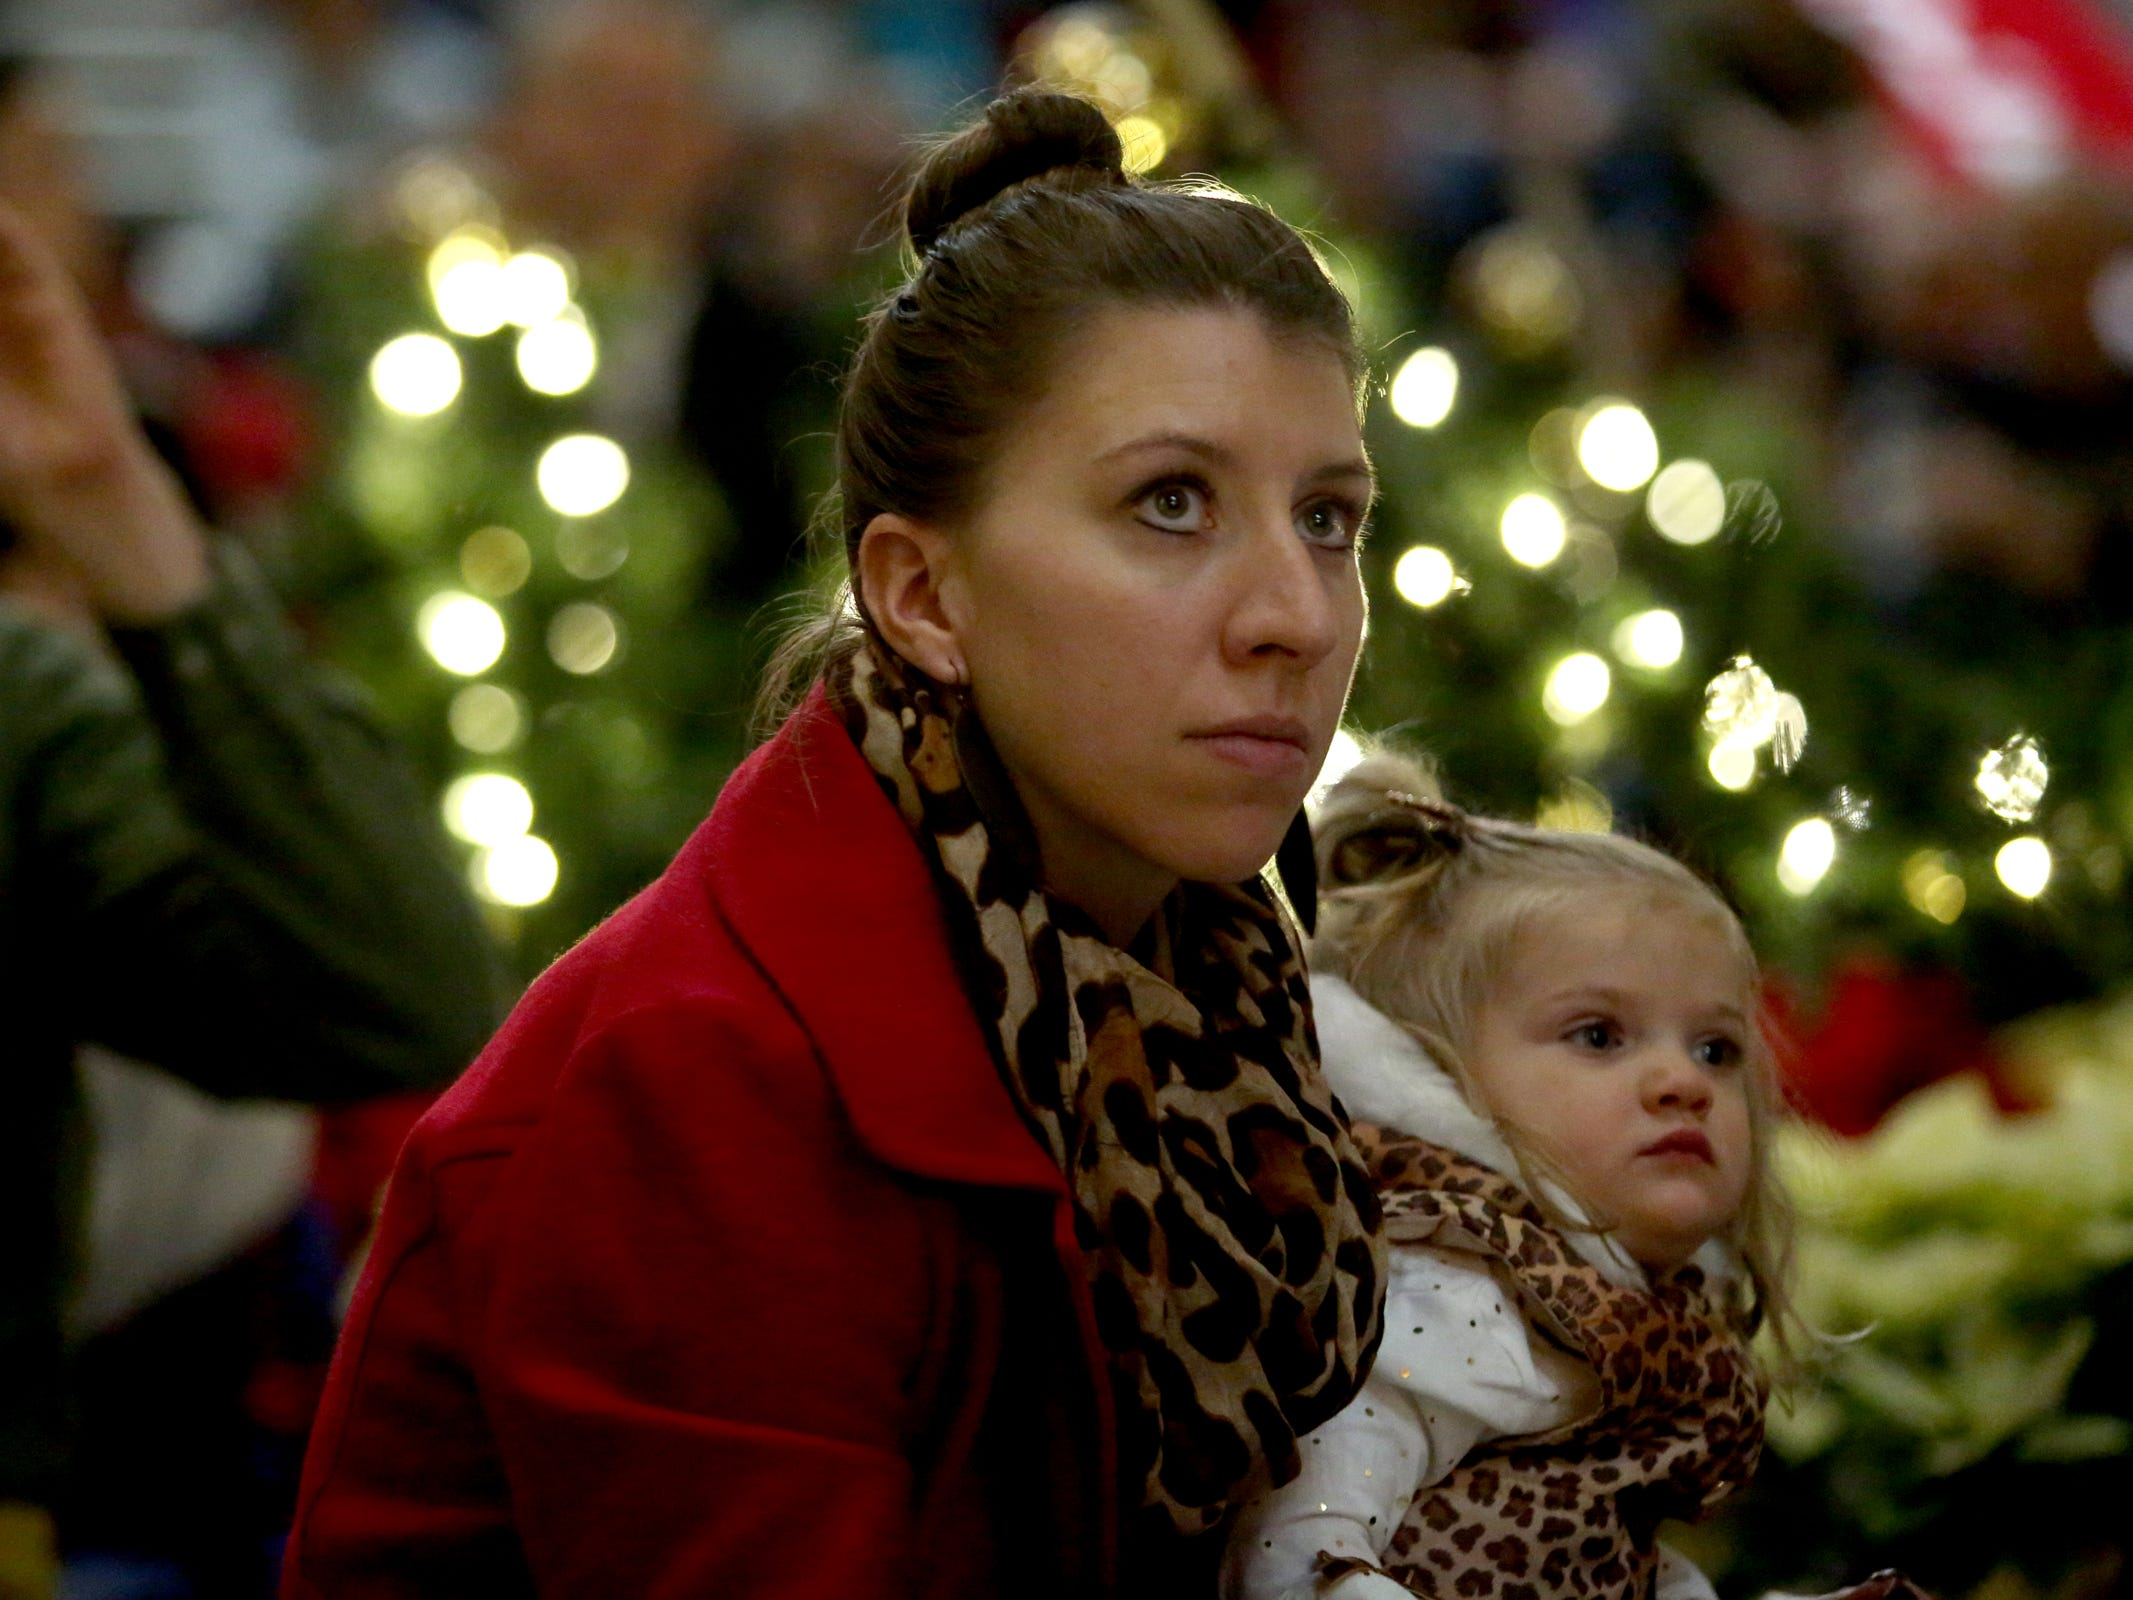 People attend the Holiday Tree Lighting Celebration at the Oregon State Capitol in Salem on Tuesday, Nov. 27, 2018.